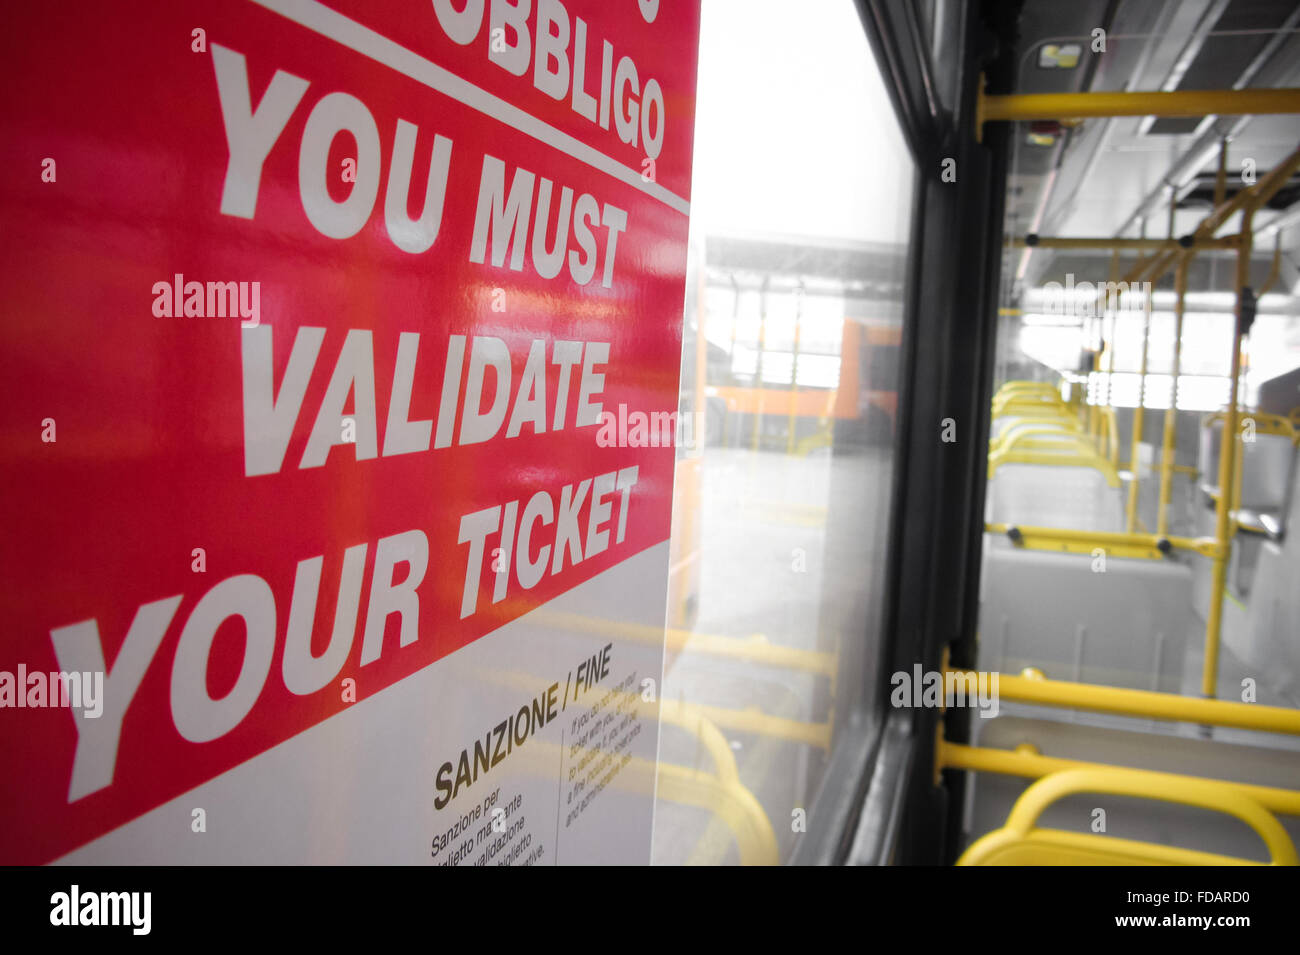 you must validate your ticket on city bus - Stock Image